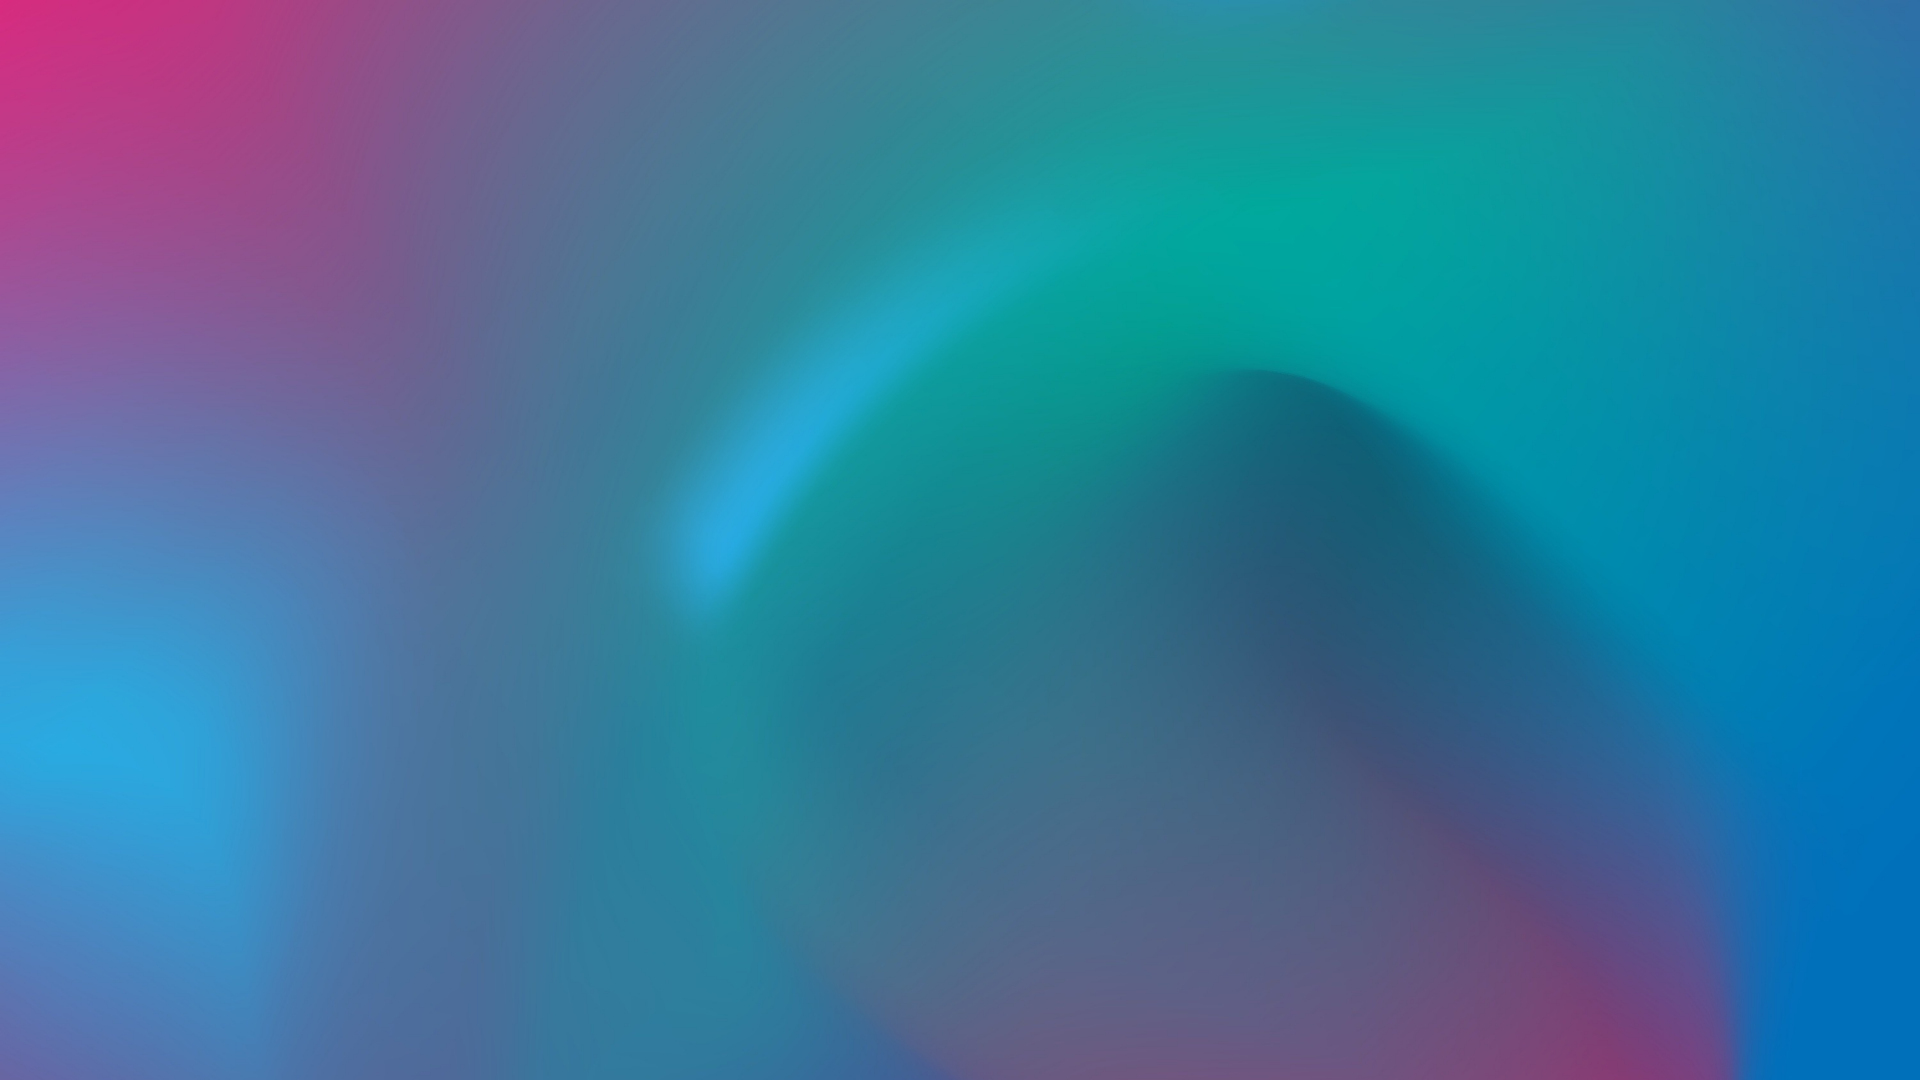 Download 1920x1080 Wallpaper Gradient Pink Blue Abstract Full Hd Hdtv Fhd 1080p 1920x1080 Hd Image Background 3261